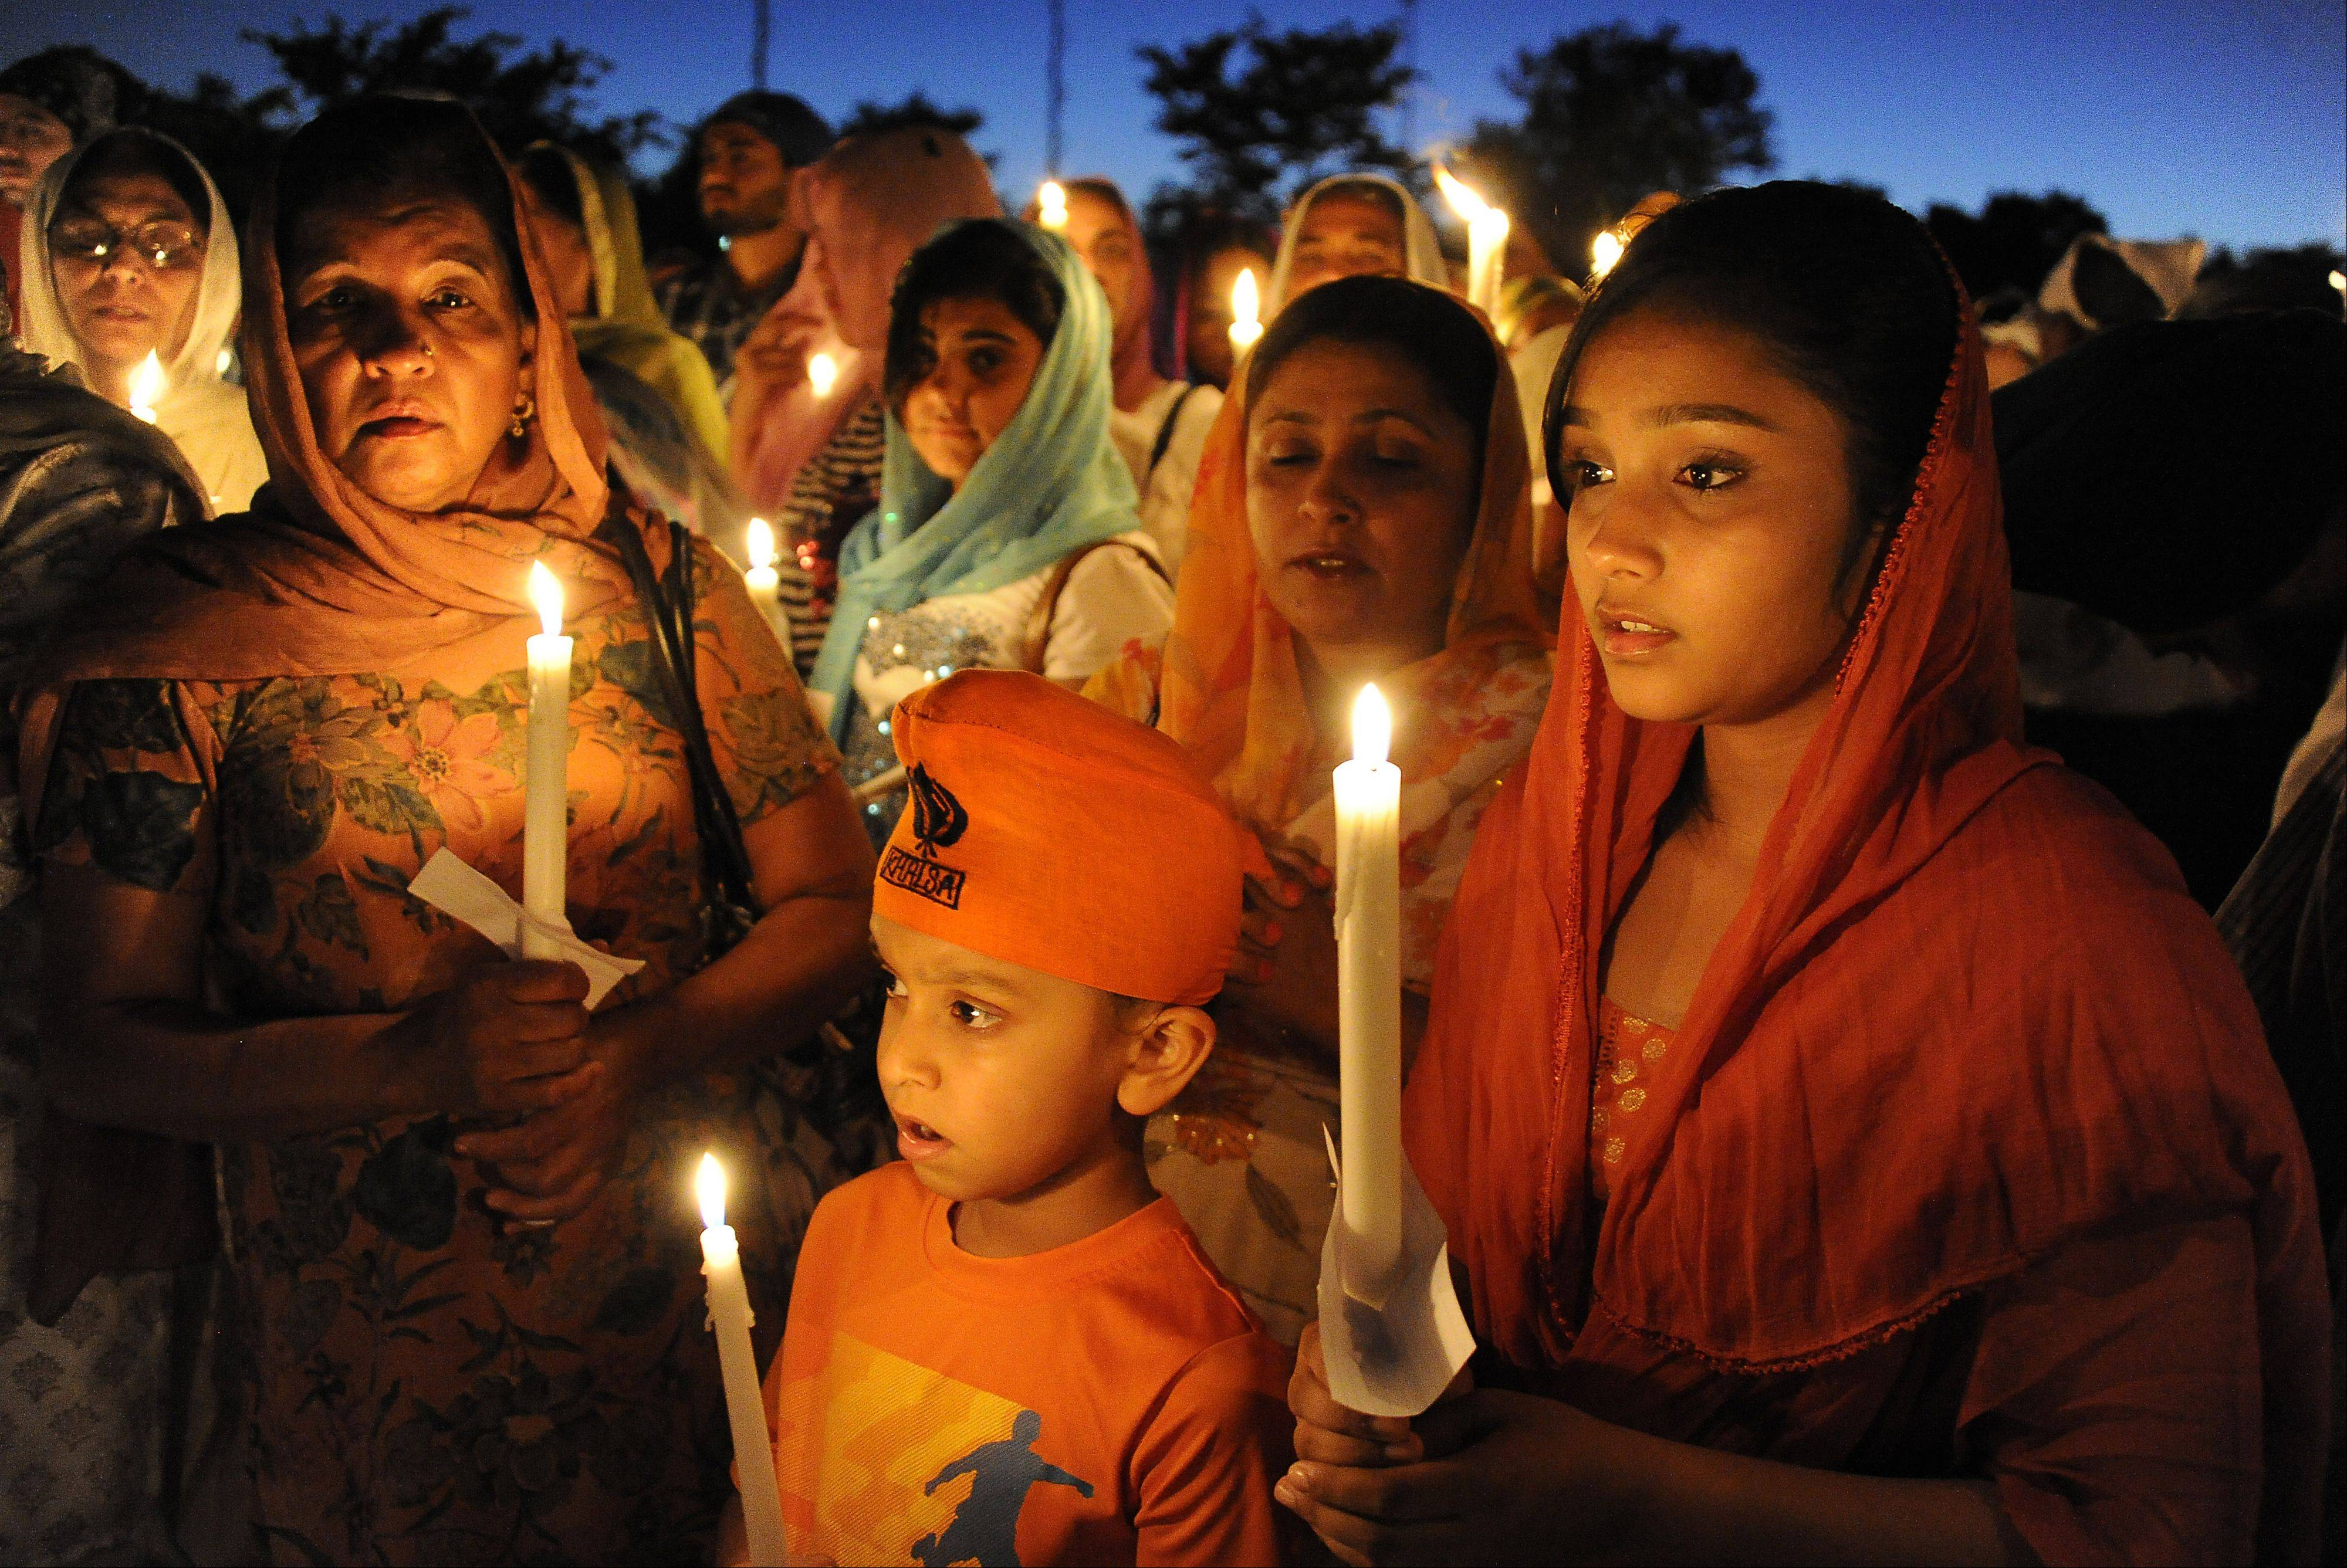 The Sikh Religious Society temple held a candlelight vigil in Palatine with Simmi Dhami, far right, 13, Harsajan Dhami, center, 6, and their mother Jeewan Dhami, near right, showing their respects to the Sikhs who died in Wisconsin.